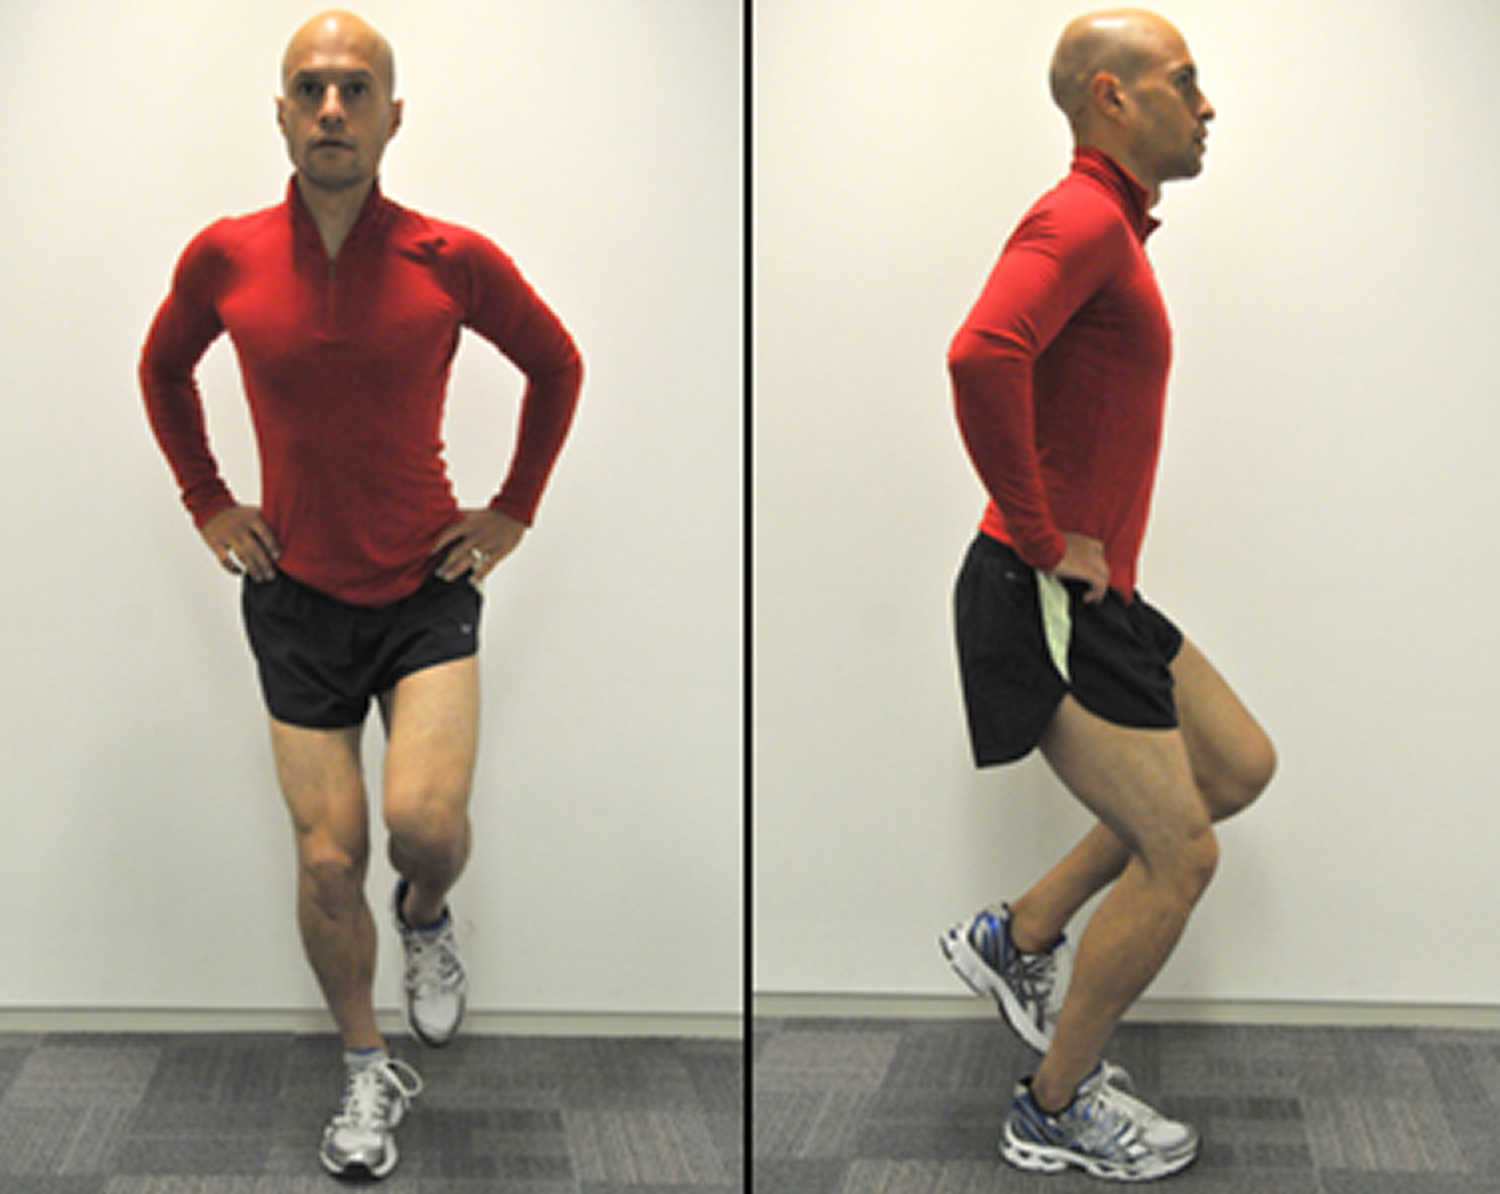 Single leg squat exercise for knee pain